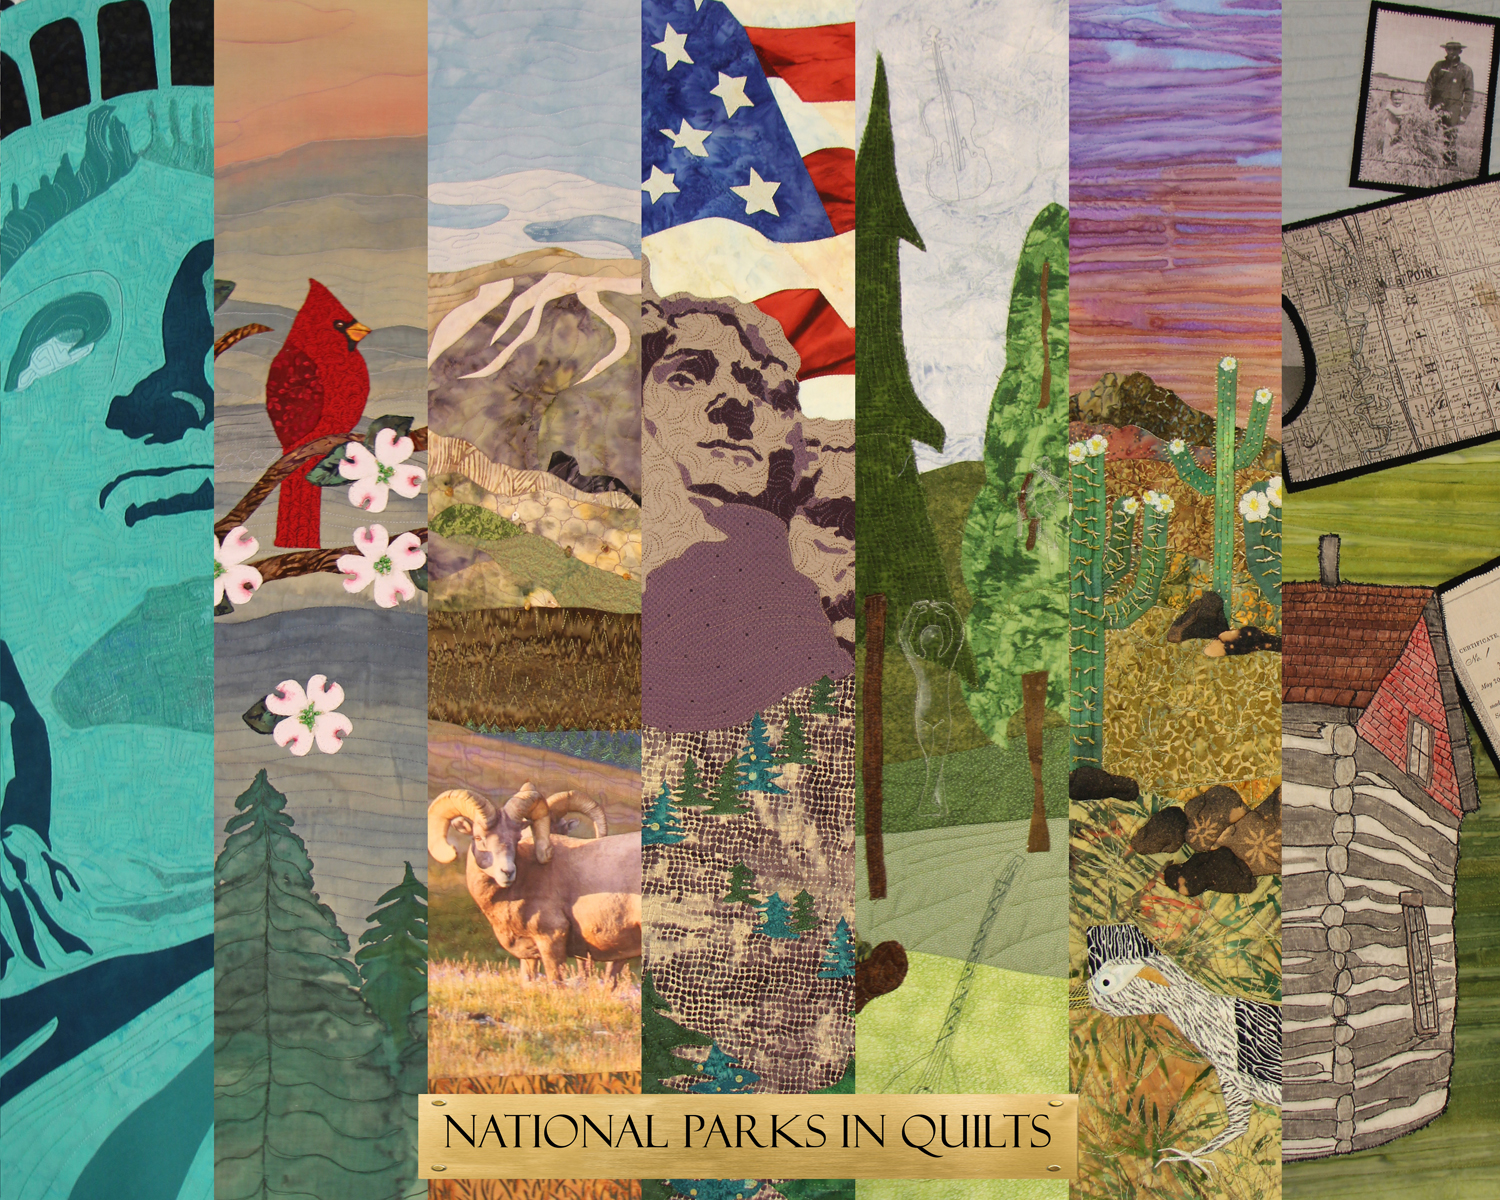 National Parks in Quilts